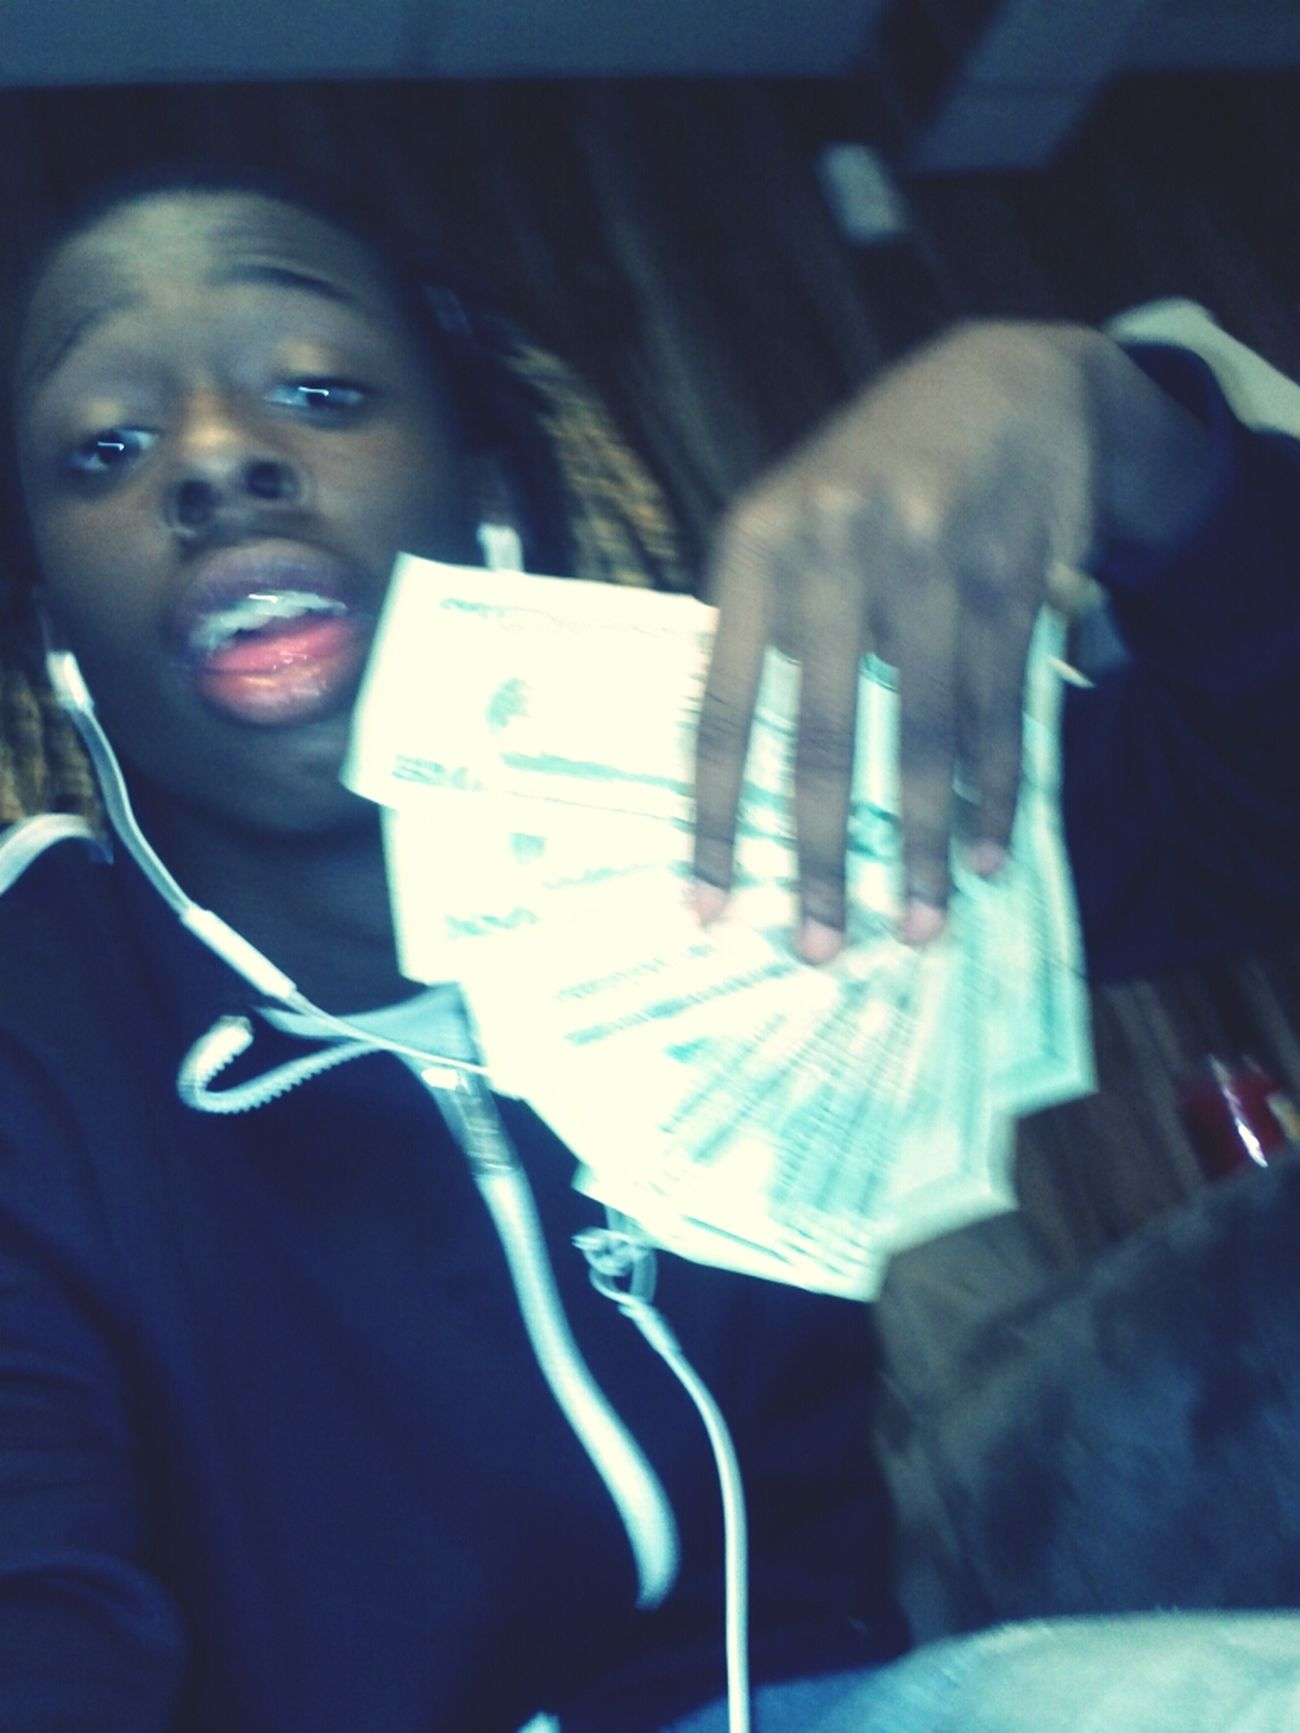 Ugly pic but I got #Bands and I know you see me